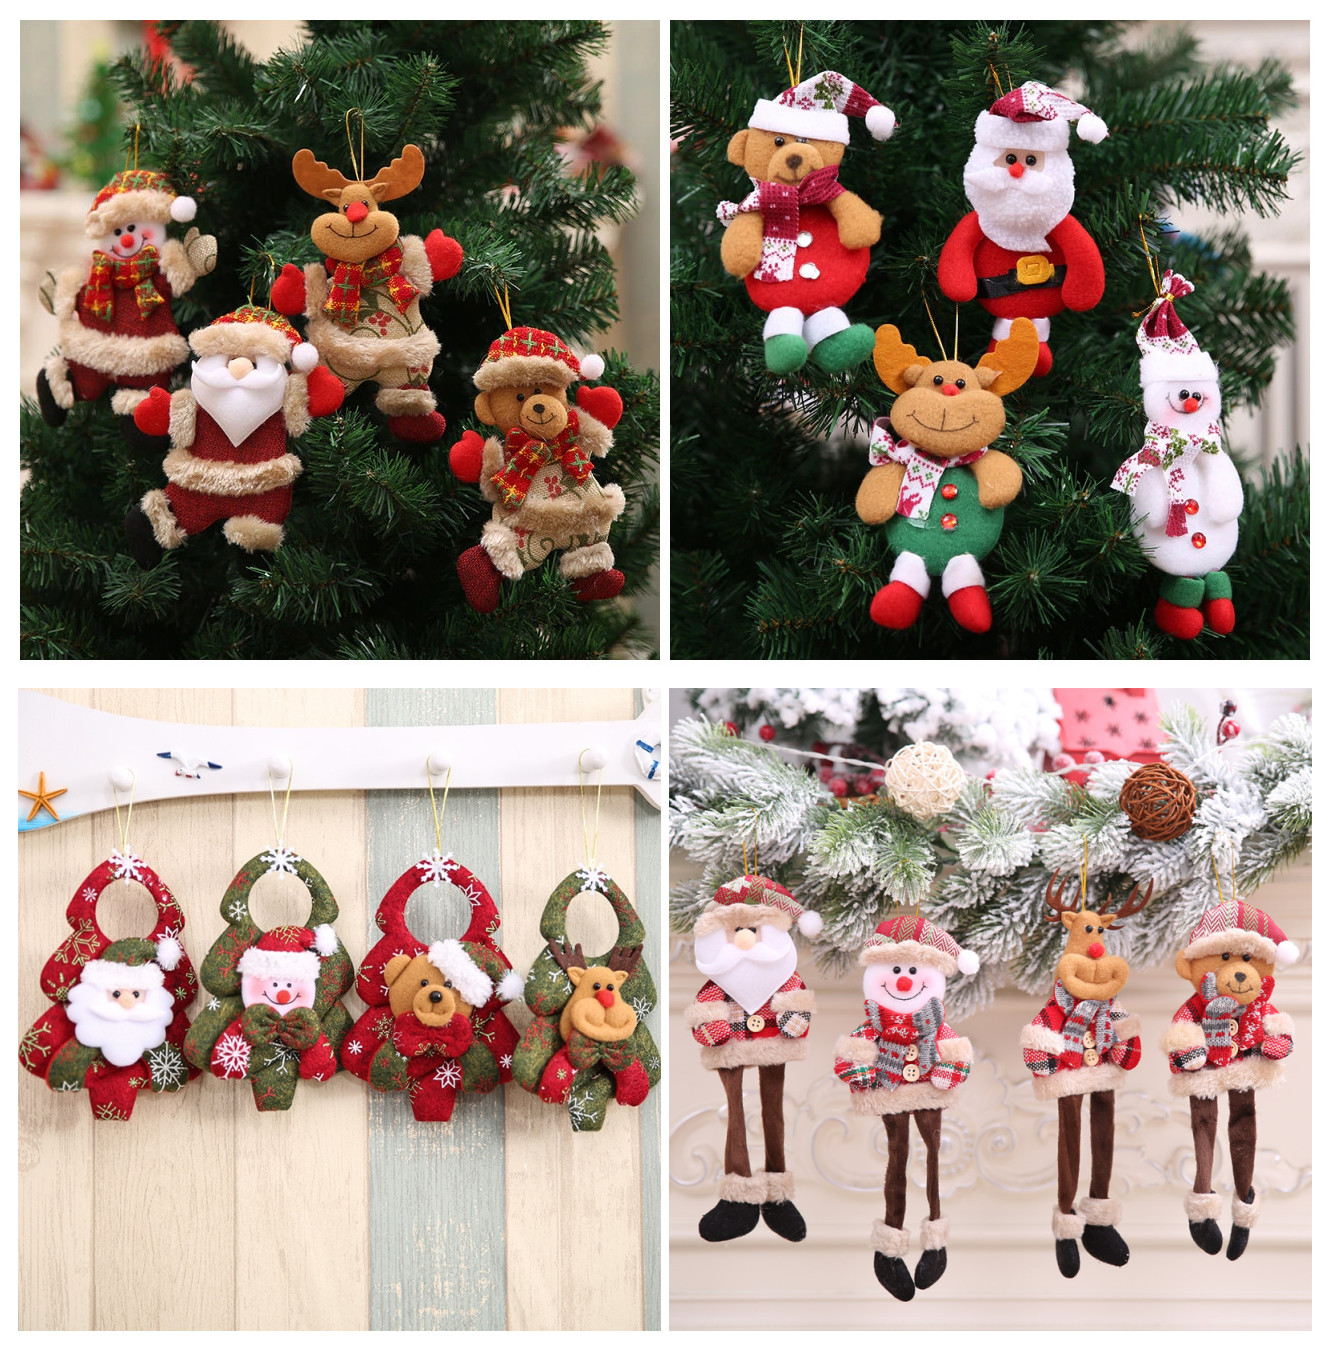 Christmas Decoration Pendants toy Outside Xmas Tree Hanging Ornament Santa Claus Snowman bear ELK Doll for Home Decor Kids Gift